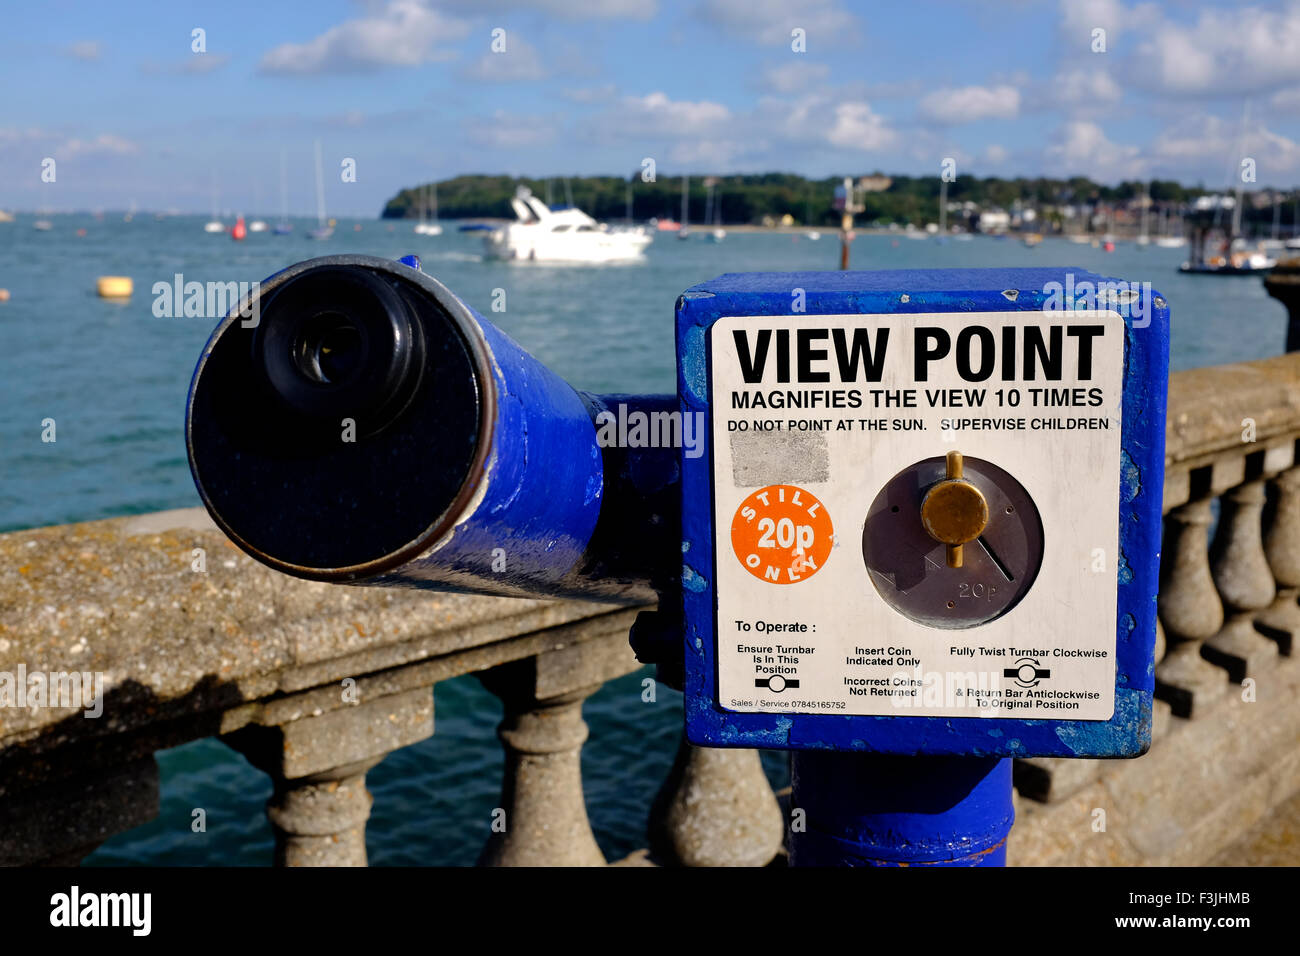 Télescope télescope d'spottongscope Seaside view point 20p agrandir la vue 10 fois le port de Cowes, Photo Stock